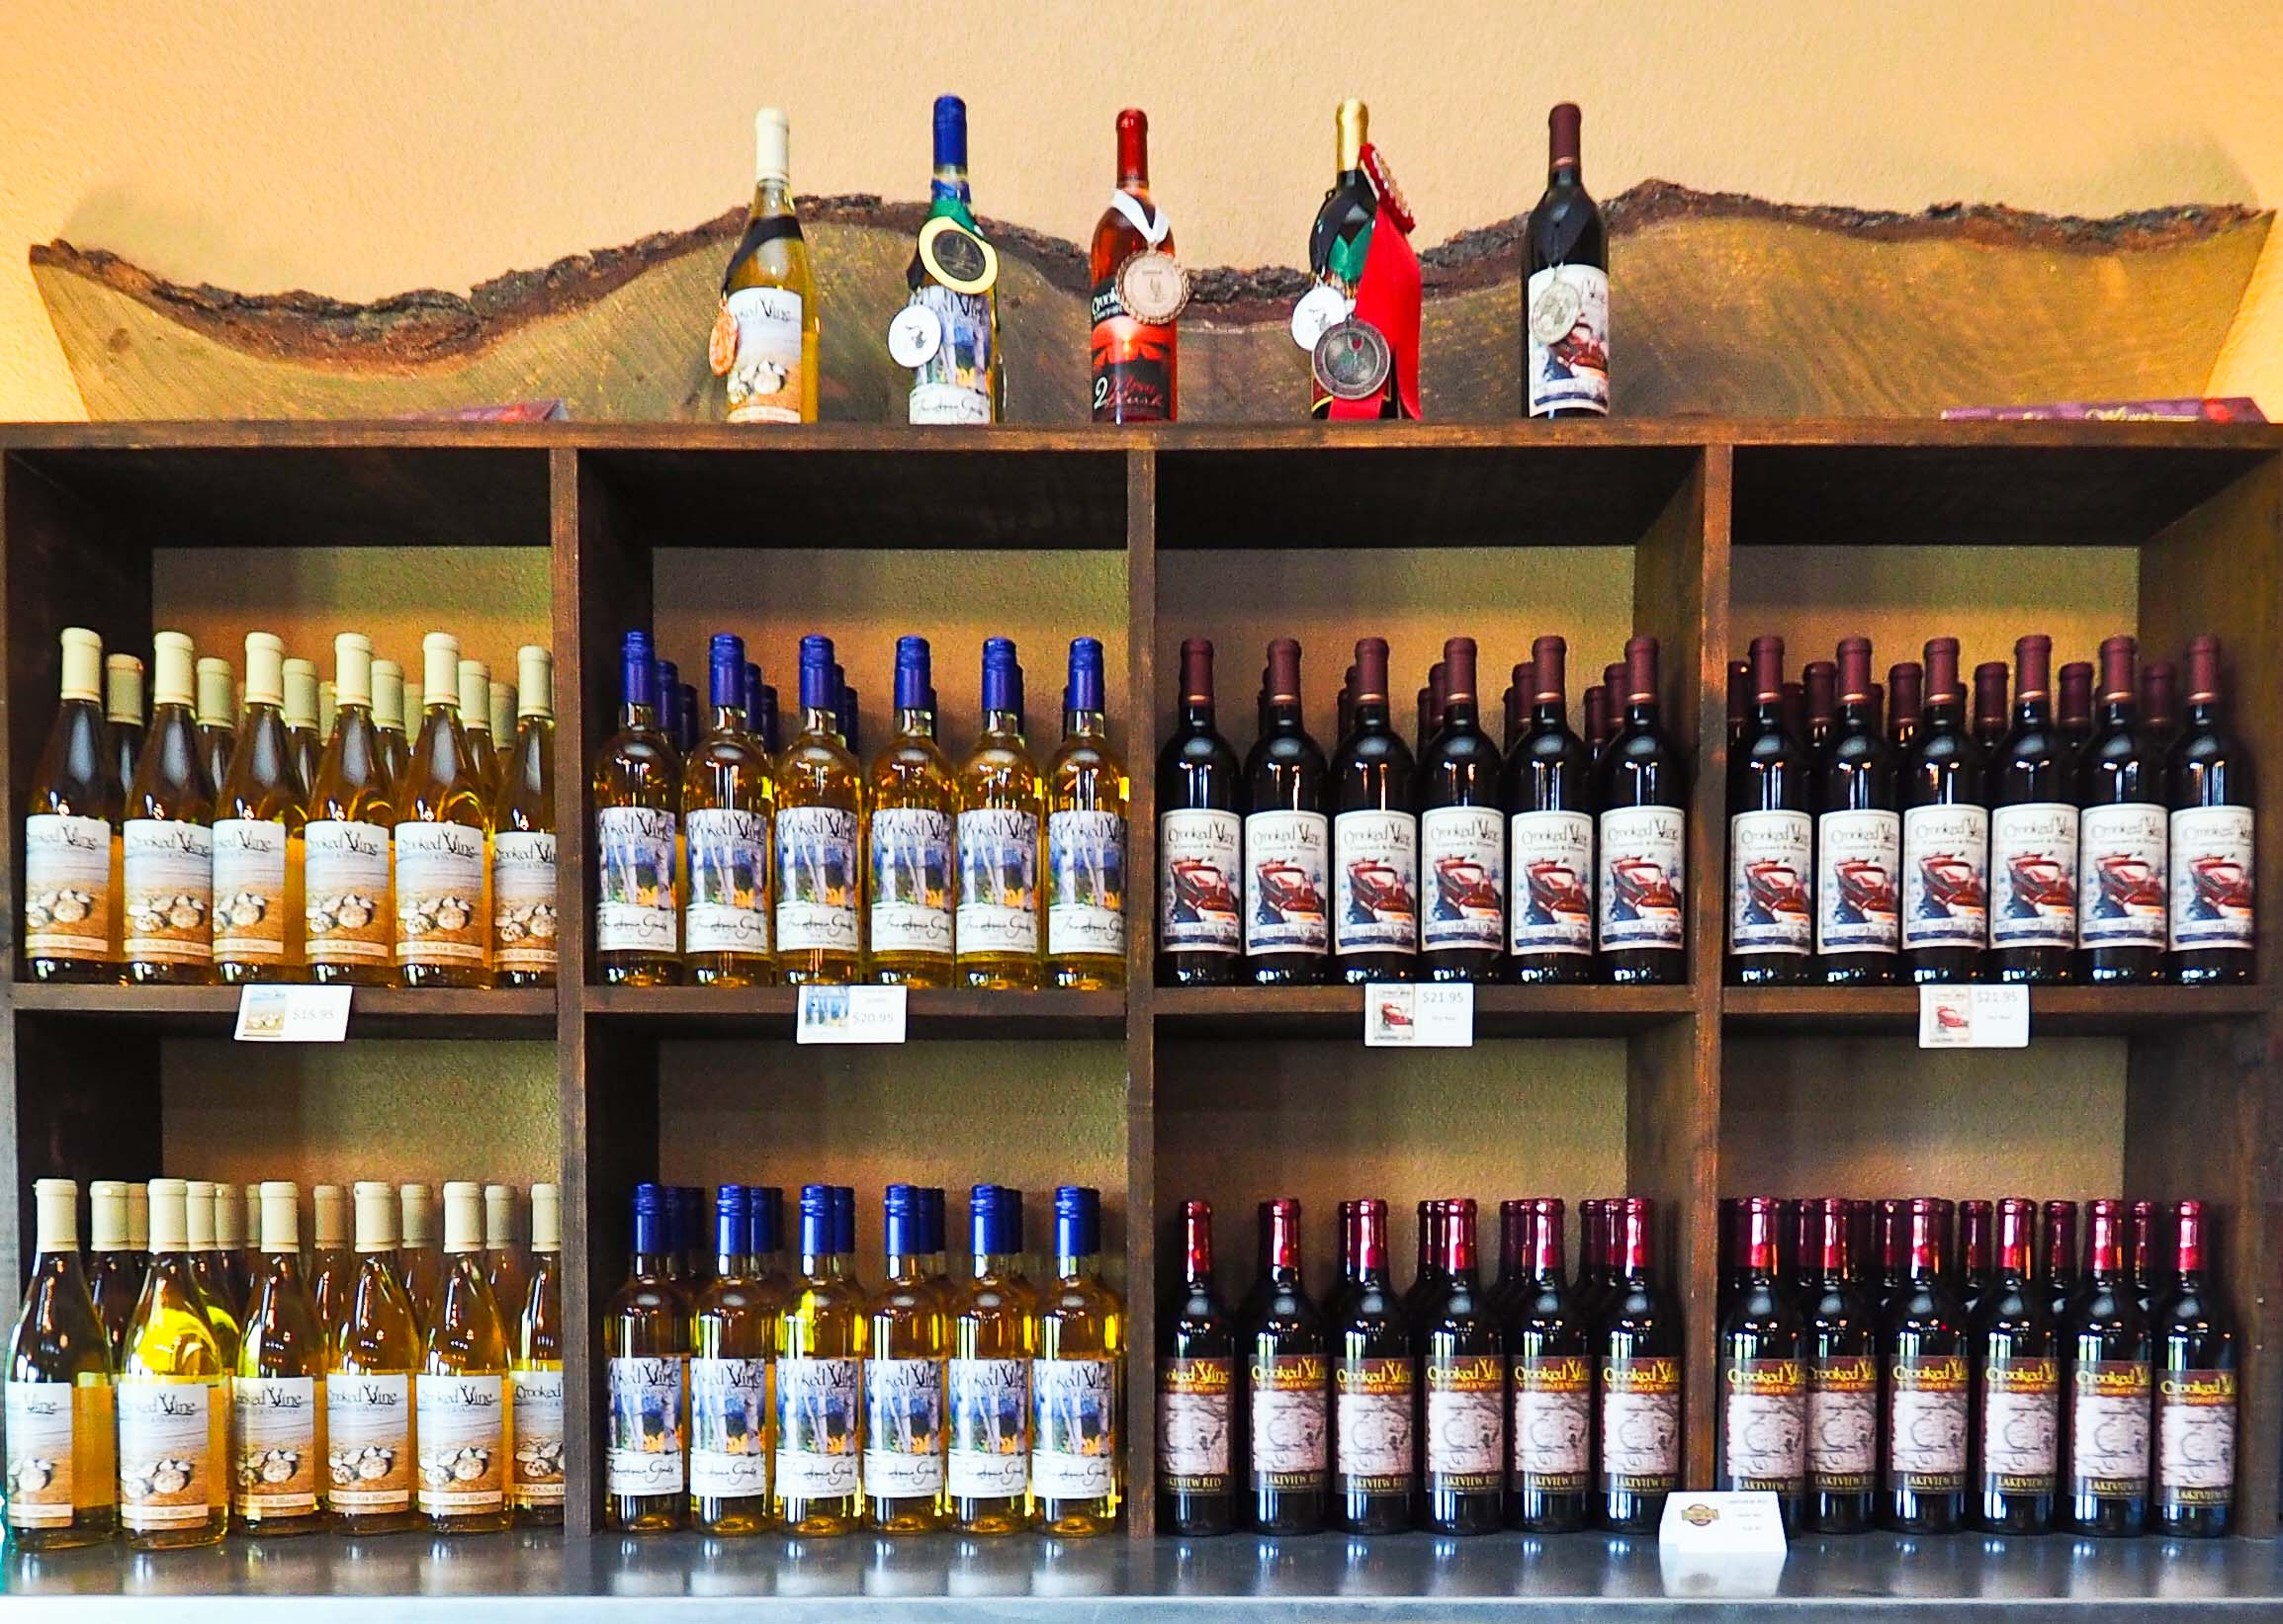 Wines - Our  wines run from bone dry reds & whites to semi-sweet and sweet.  Come in for a tasting and see the new standard in Michigan wines!